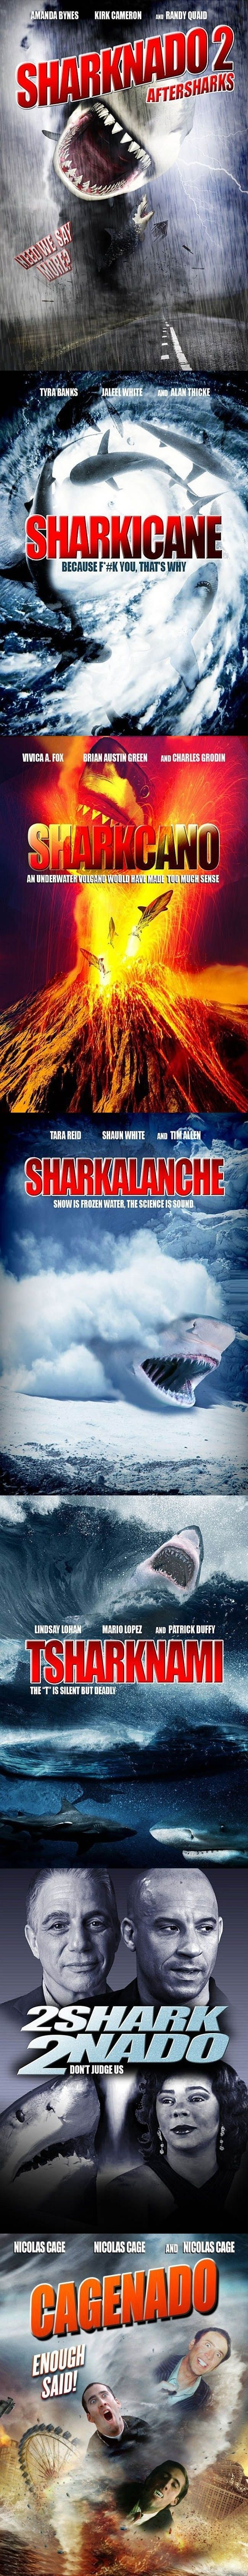 After Sharknado 1